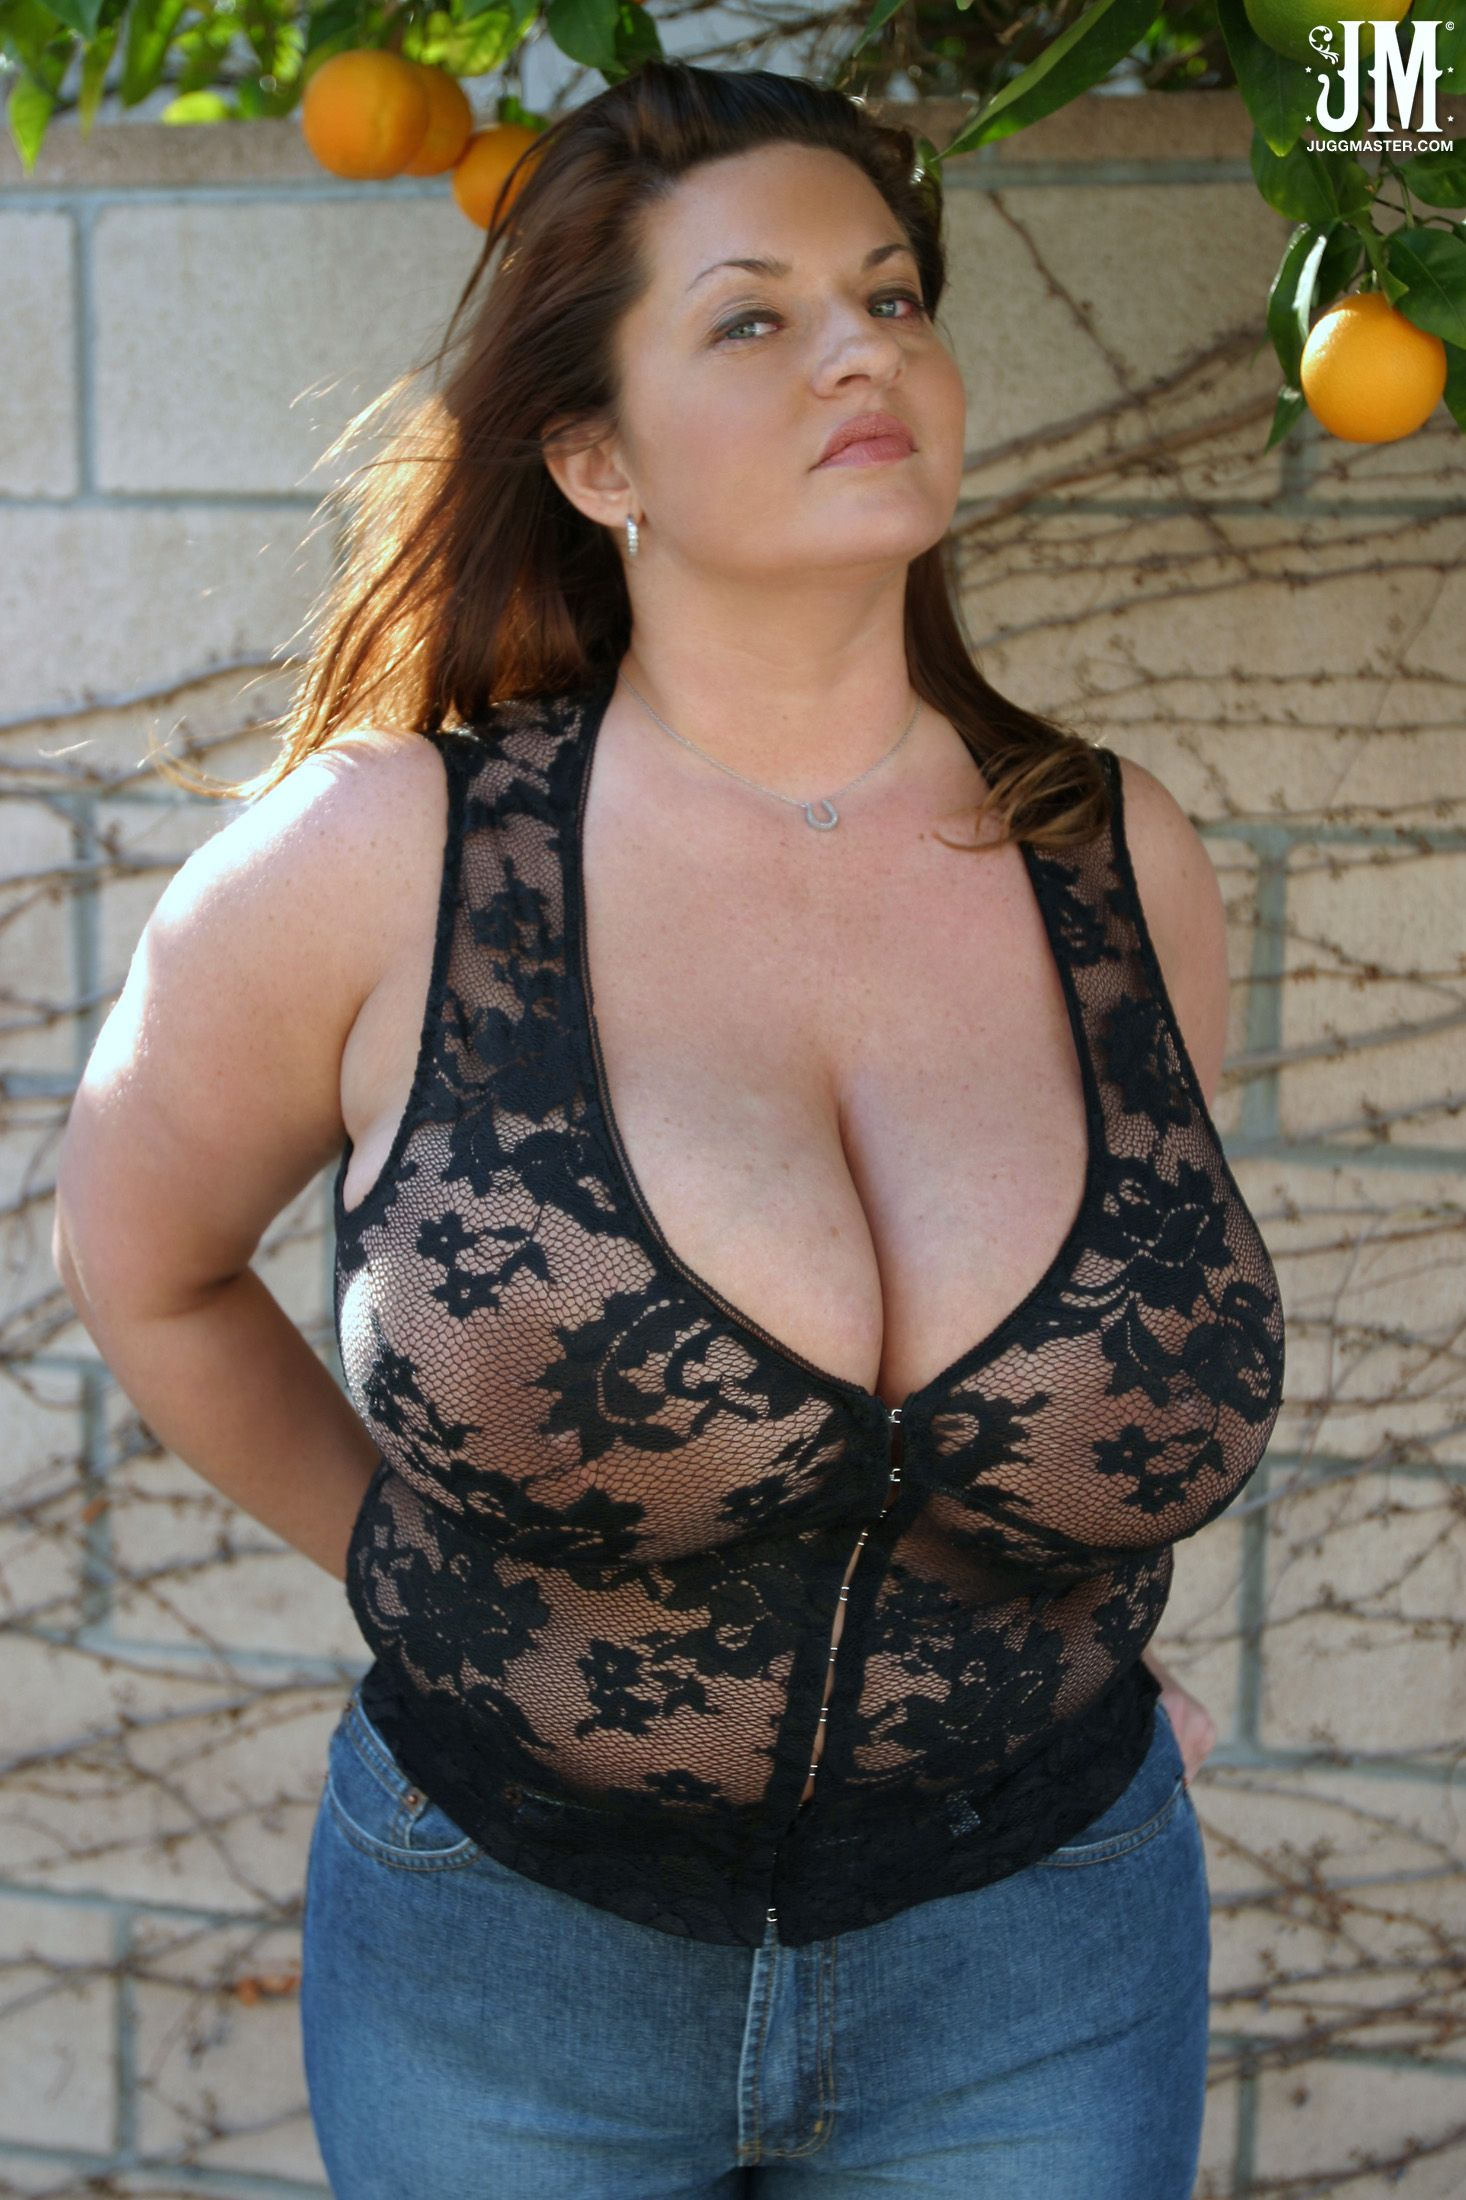 reagan single bbw women Meet single women in reagan are you ready to find a single woman to tie the nuptial knot with or would you simply like someone new to go bike riding with you this weekend in reagan.